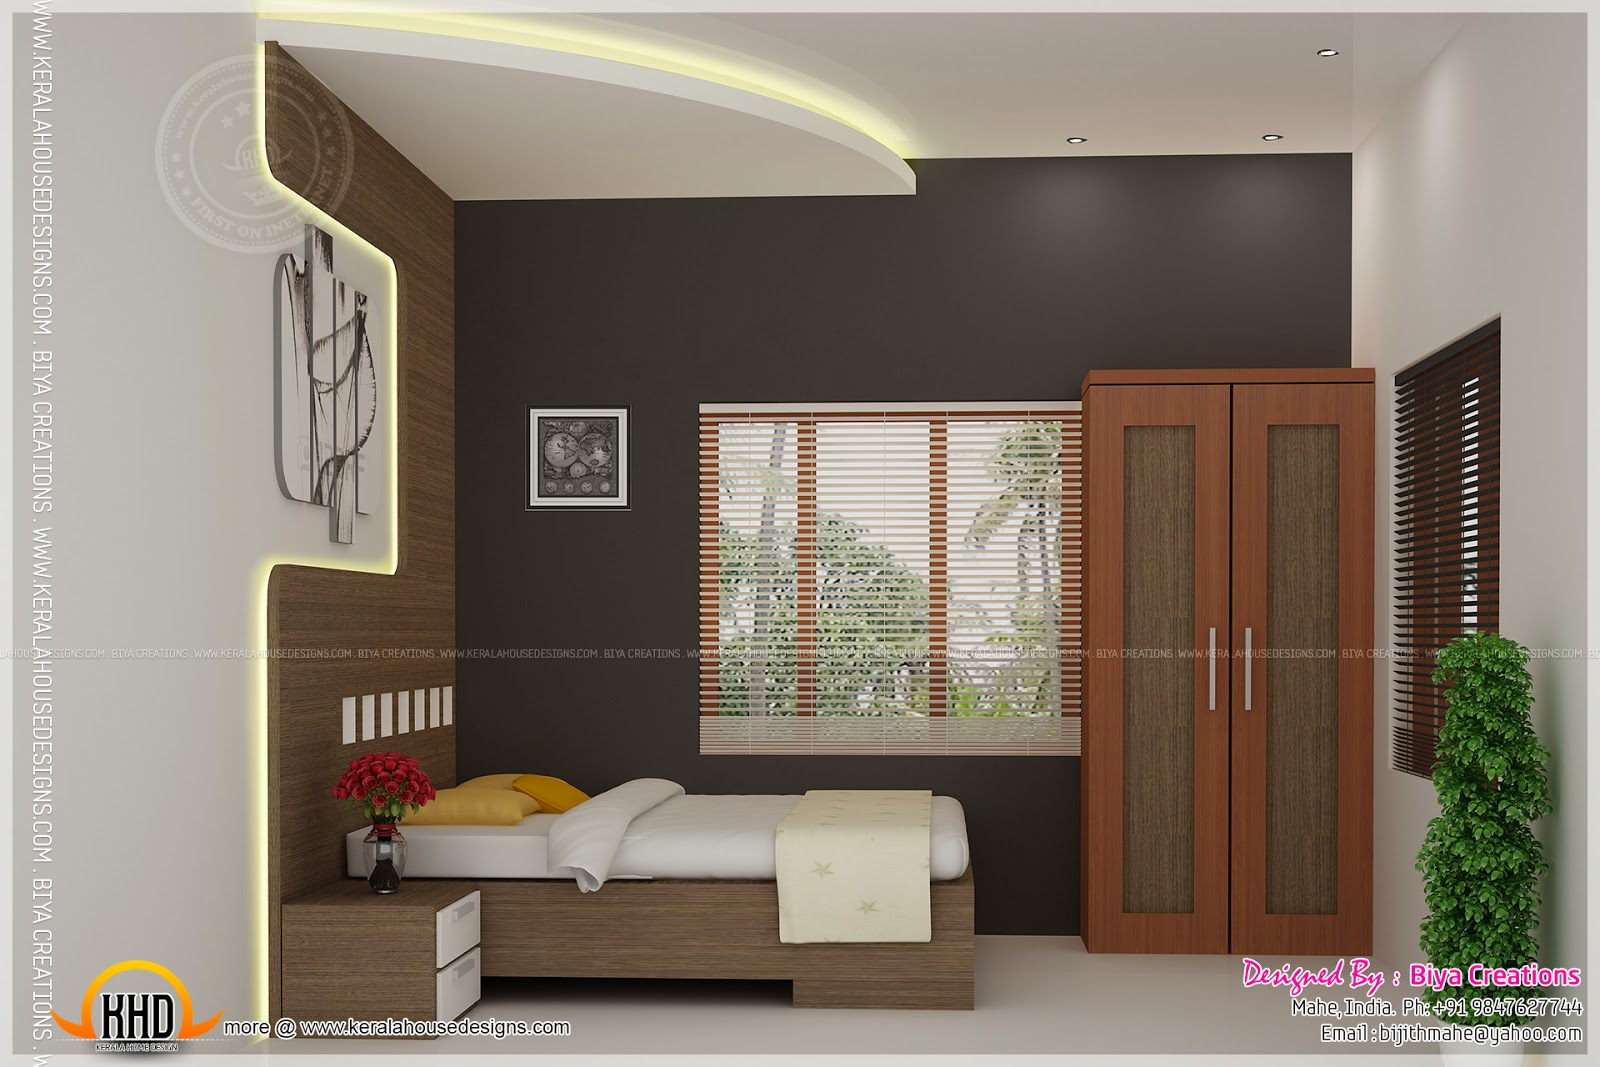 Bedroom kid bedroom and kitchen interior kerala home design and floor plans - Interior designs for small homes ...